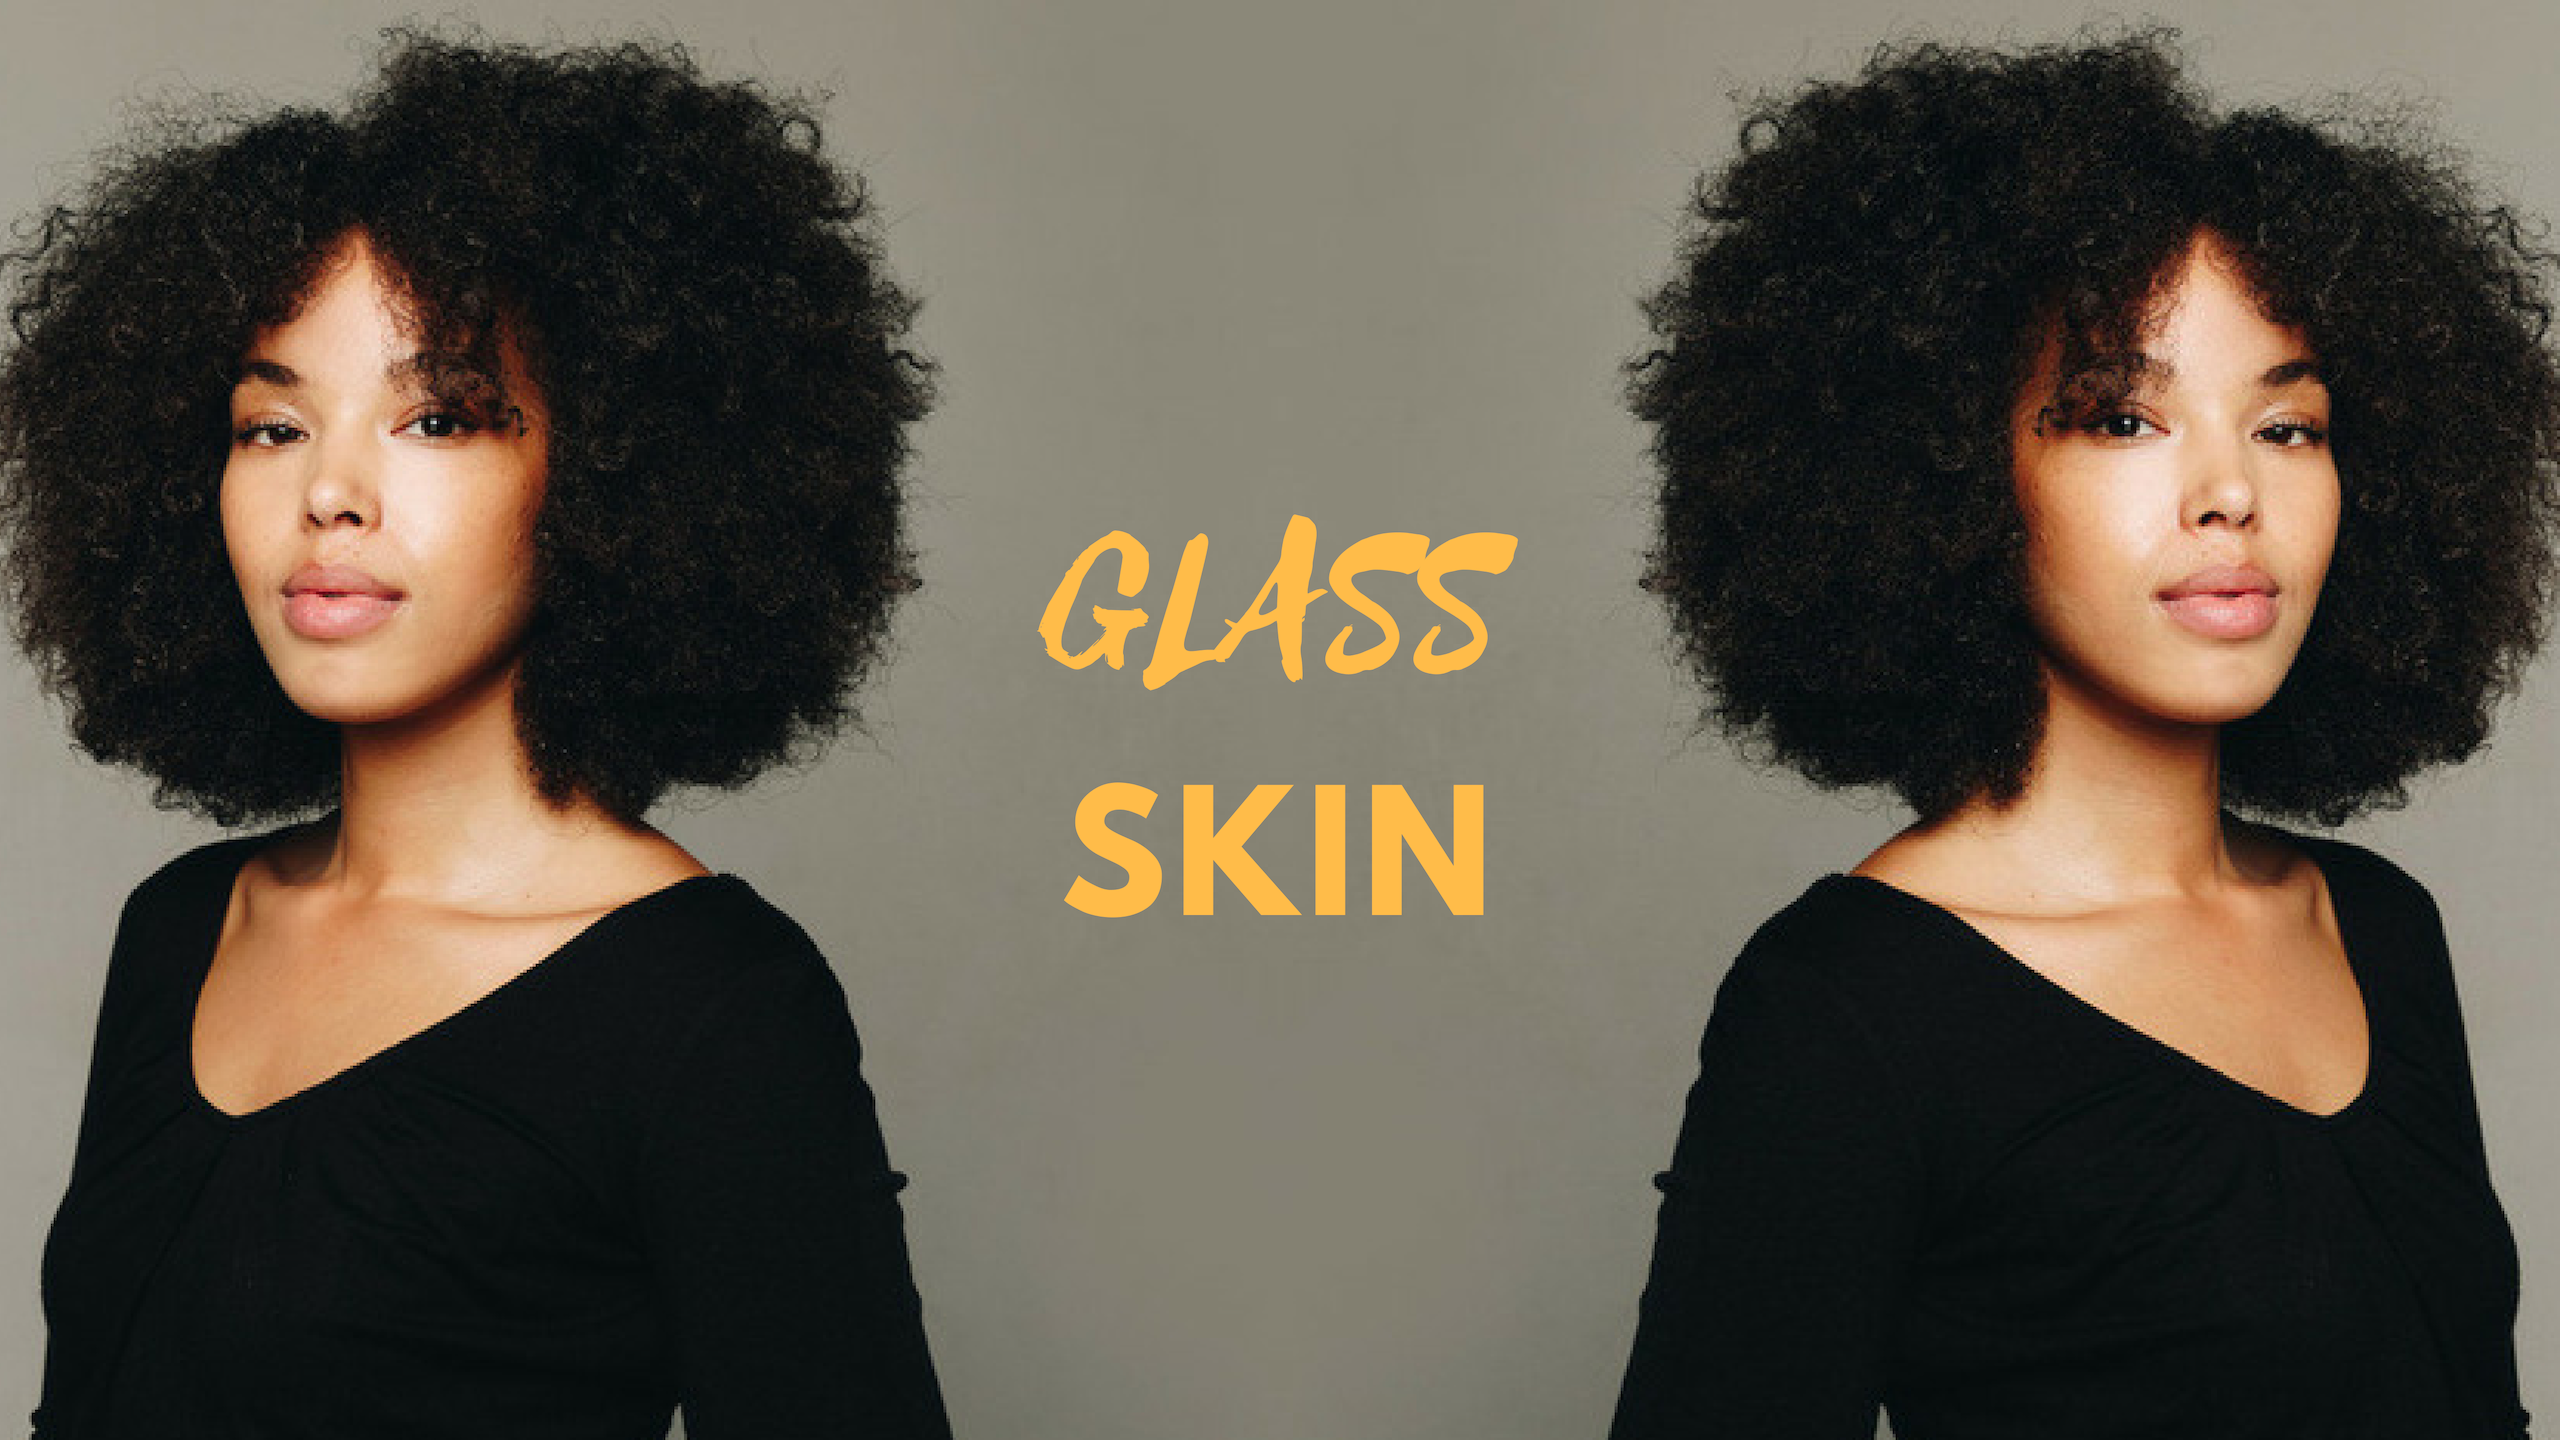 glass skin, korean beauty routine